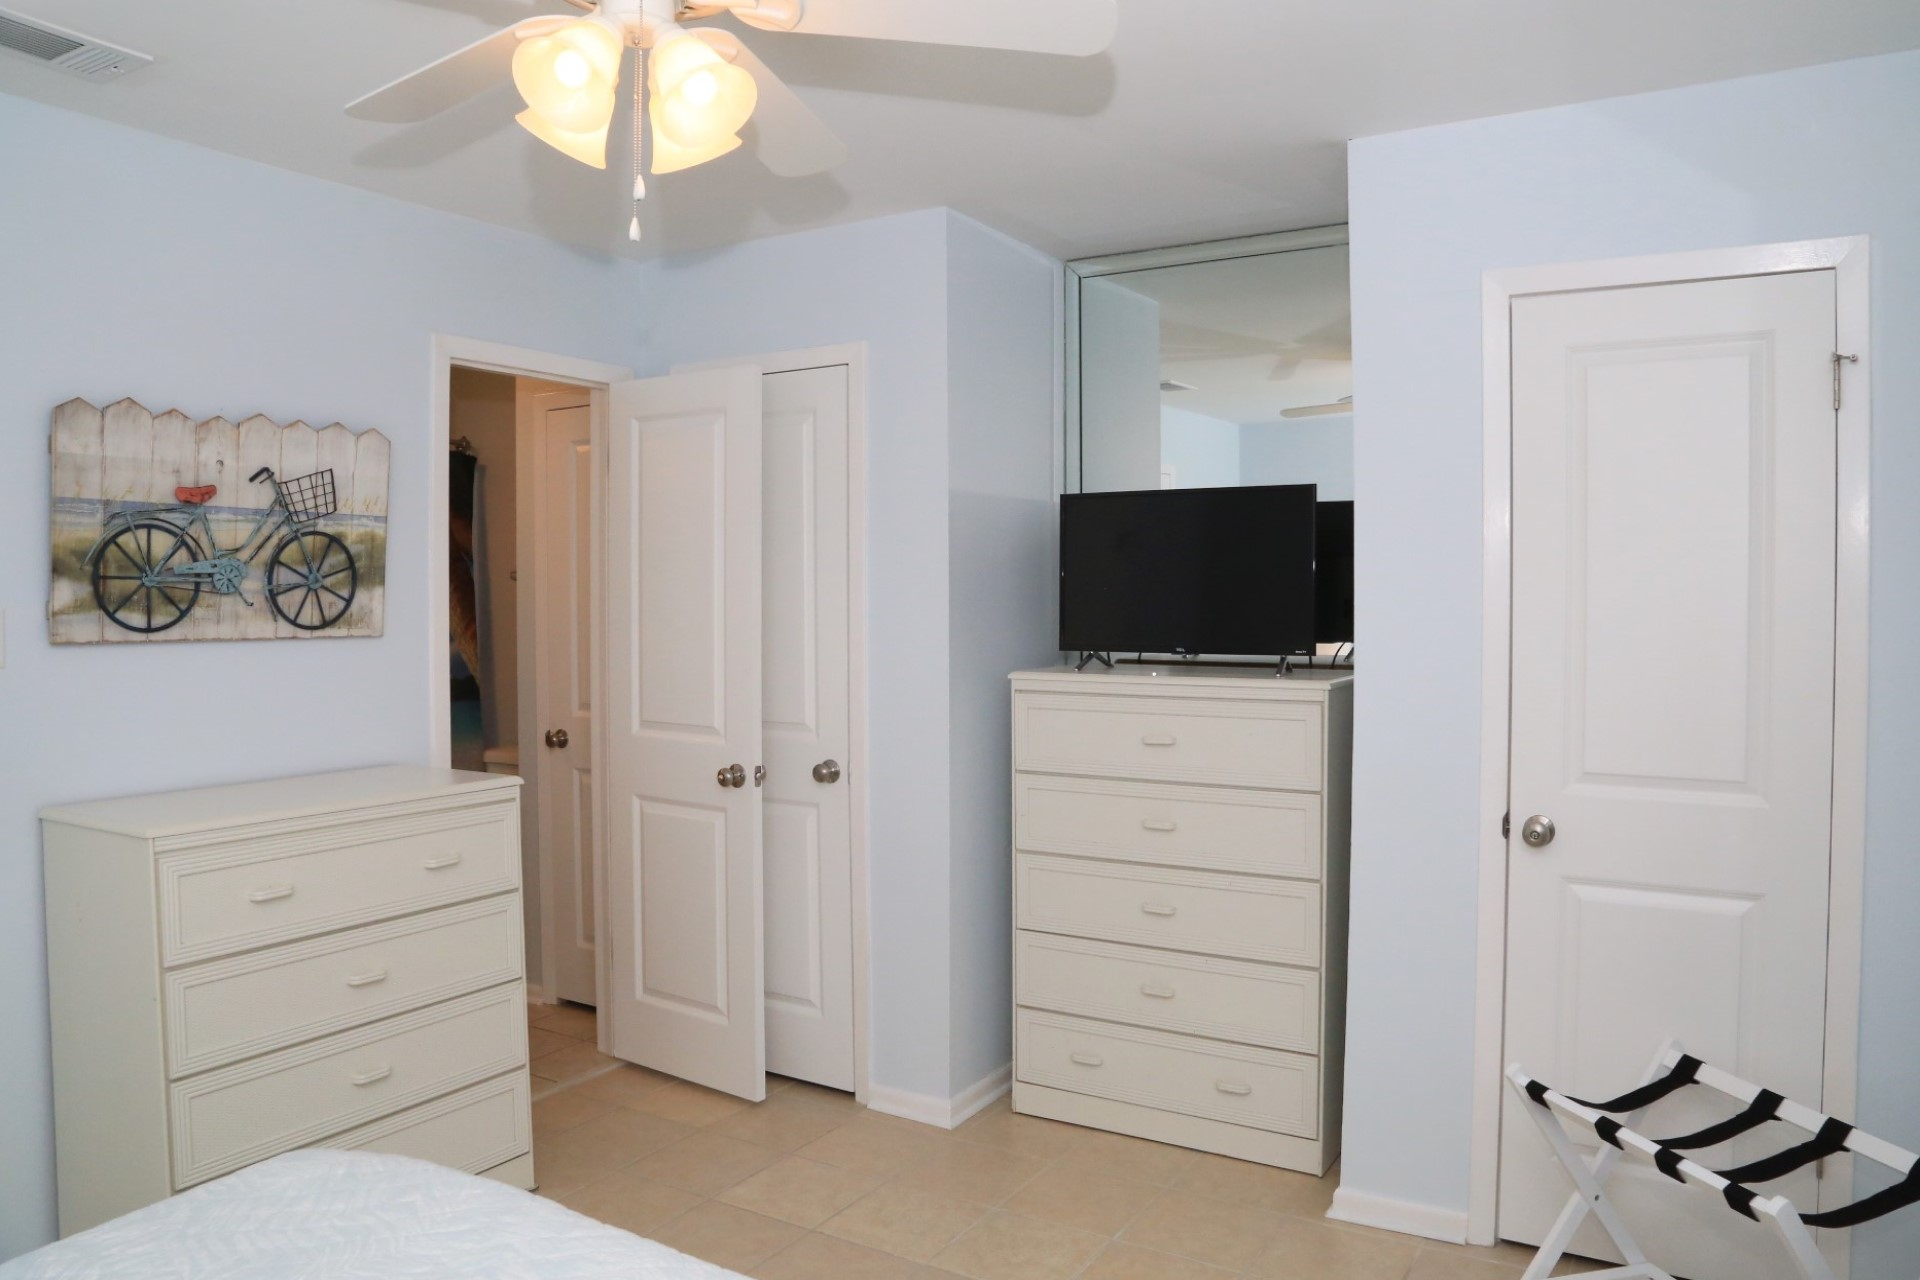 The master bedroom with TV, dressers, and bathroom.